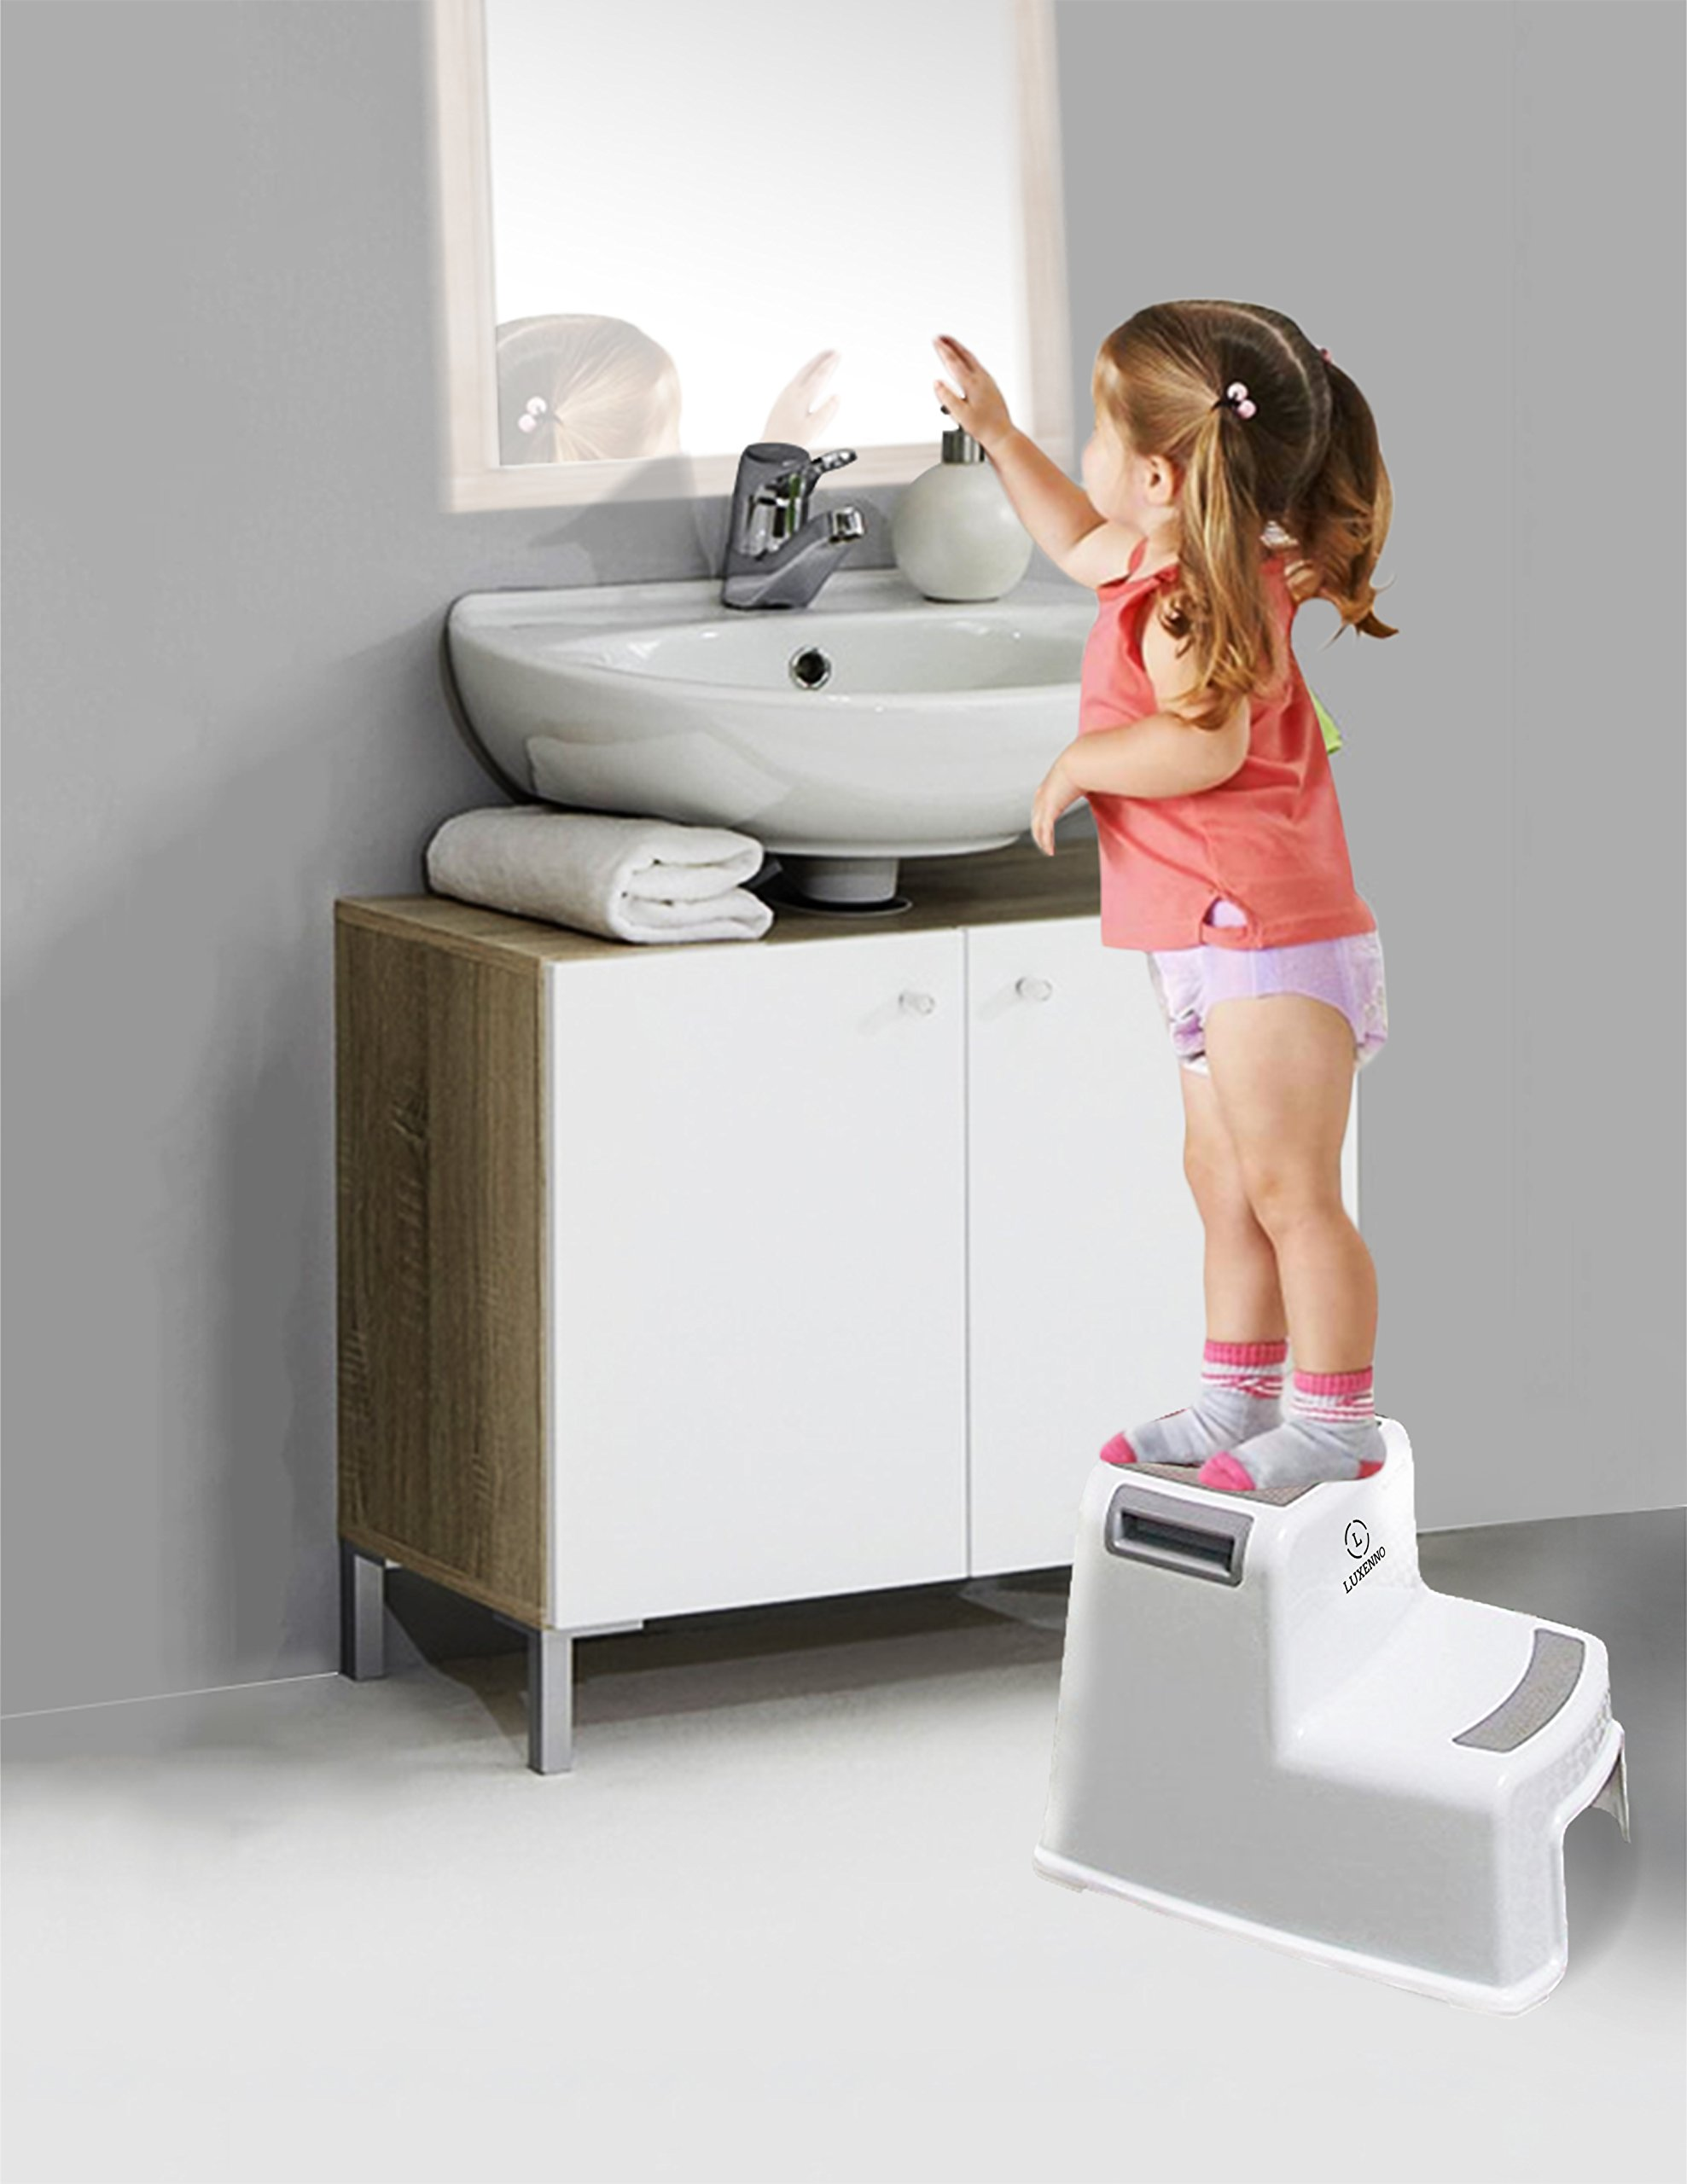 (2 Pack) Dual Height Step Stool for Toddlers & Kids, Nursery Step Stool Potty Training Stool for Bathroom, Kitchen, Two-Step Design with Soft No-Slip Grips and Safe, White & Grey, by Luxenno by LUXENNO (Image #4)